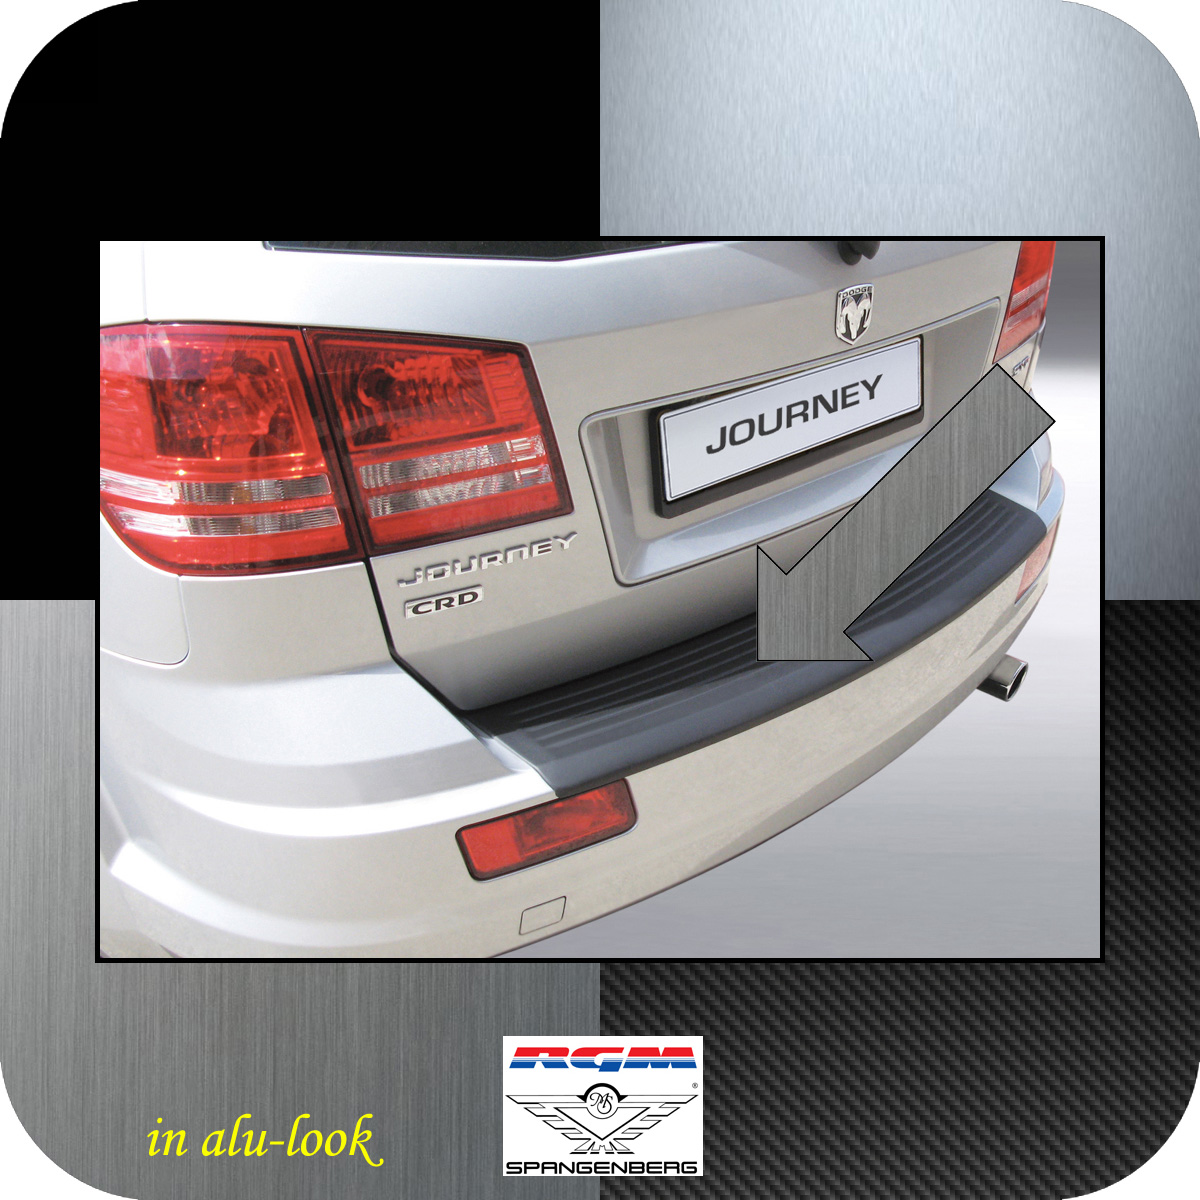 Ladekantenschutz Alu-Look Dodge Journey SUV ab facelift Baujahr 2011- 3504562